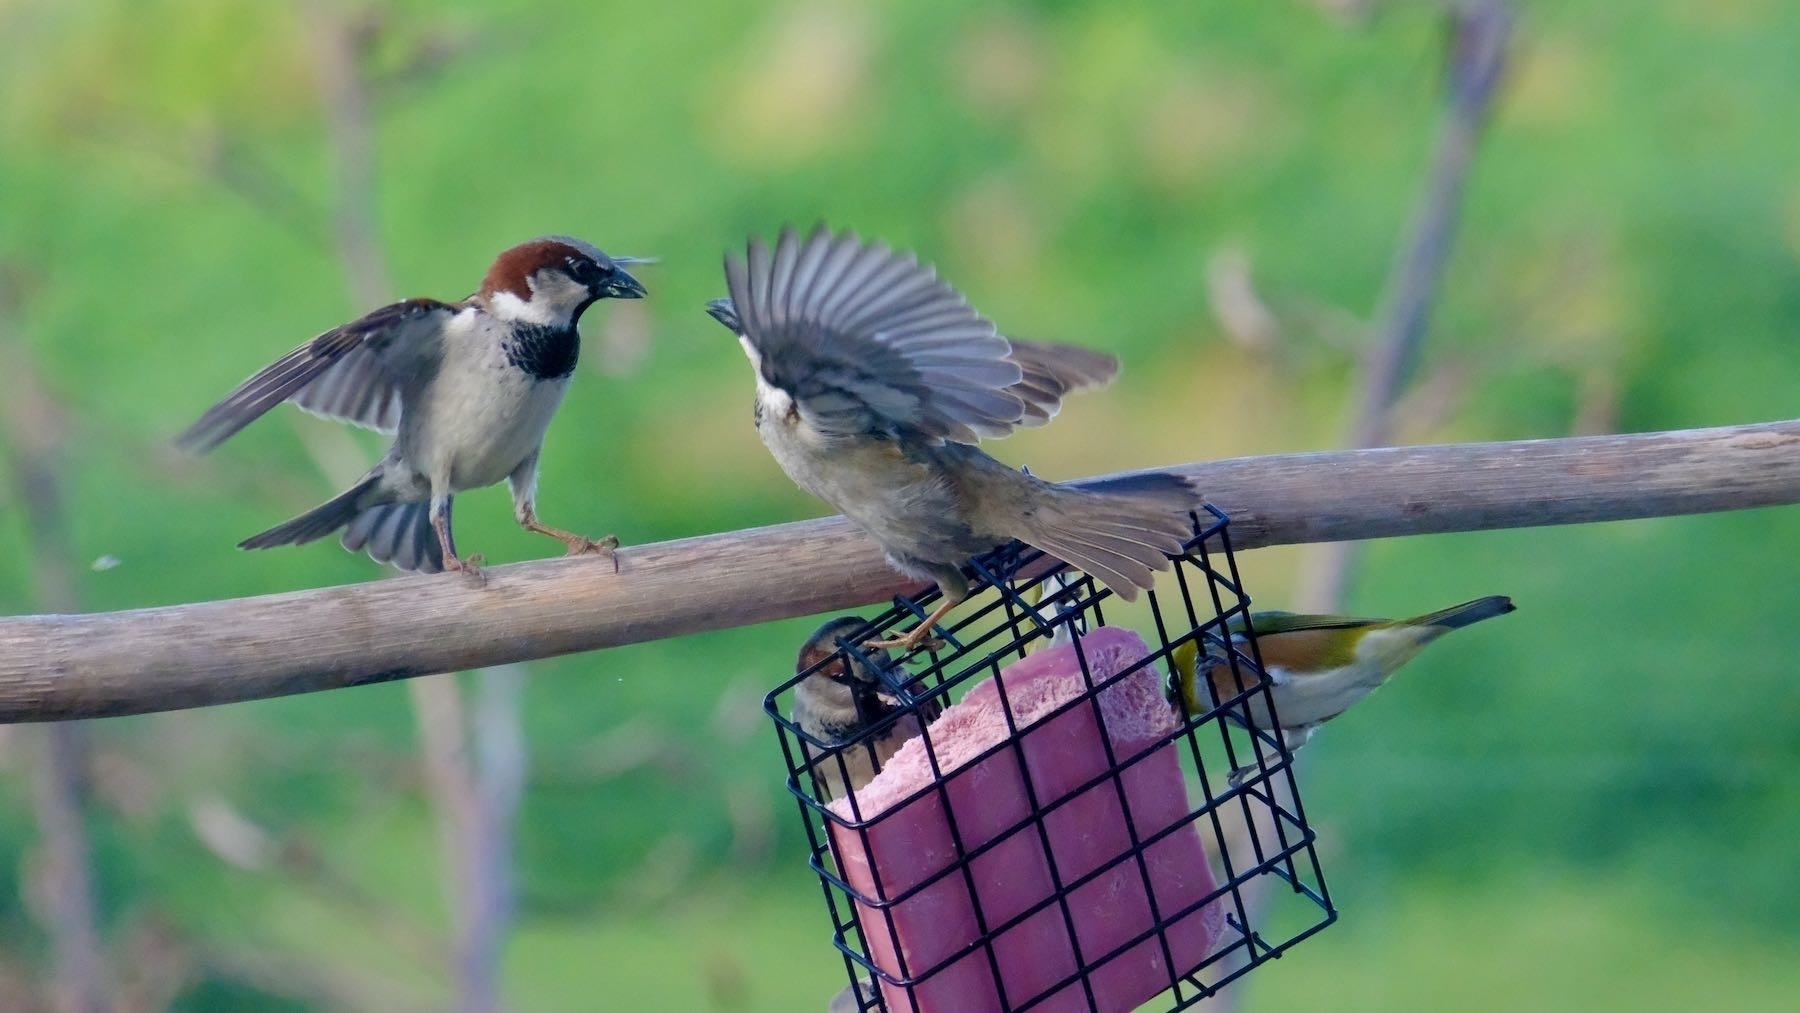 Two sparrows arguing.